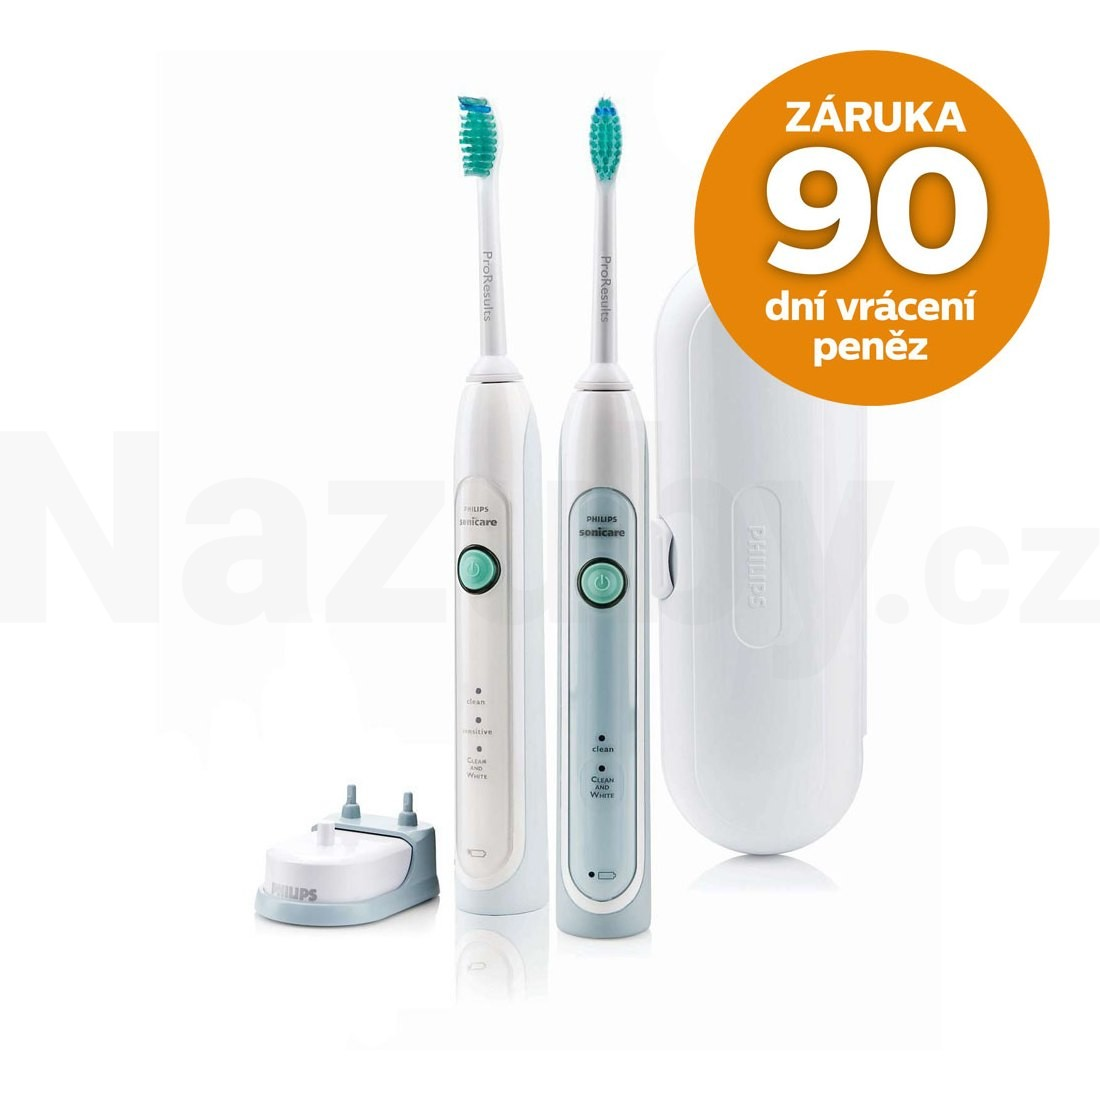 Philips Sonicare Healthy White HX6730/33